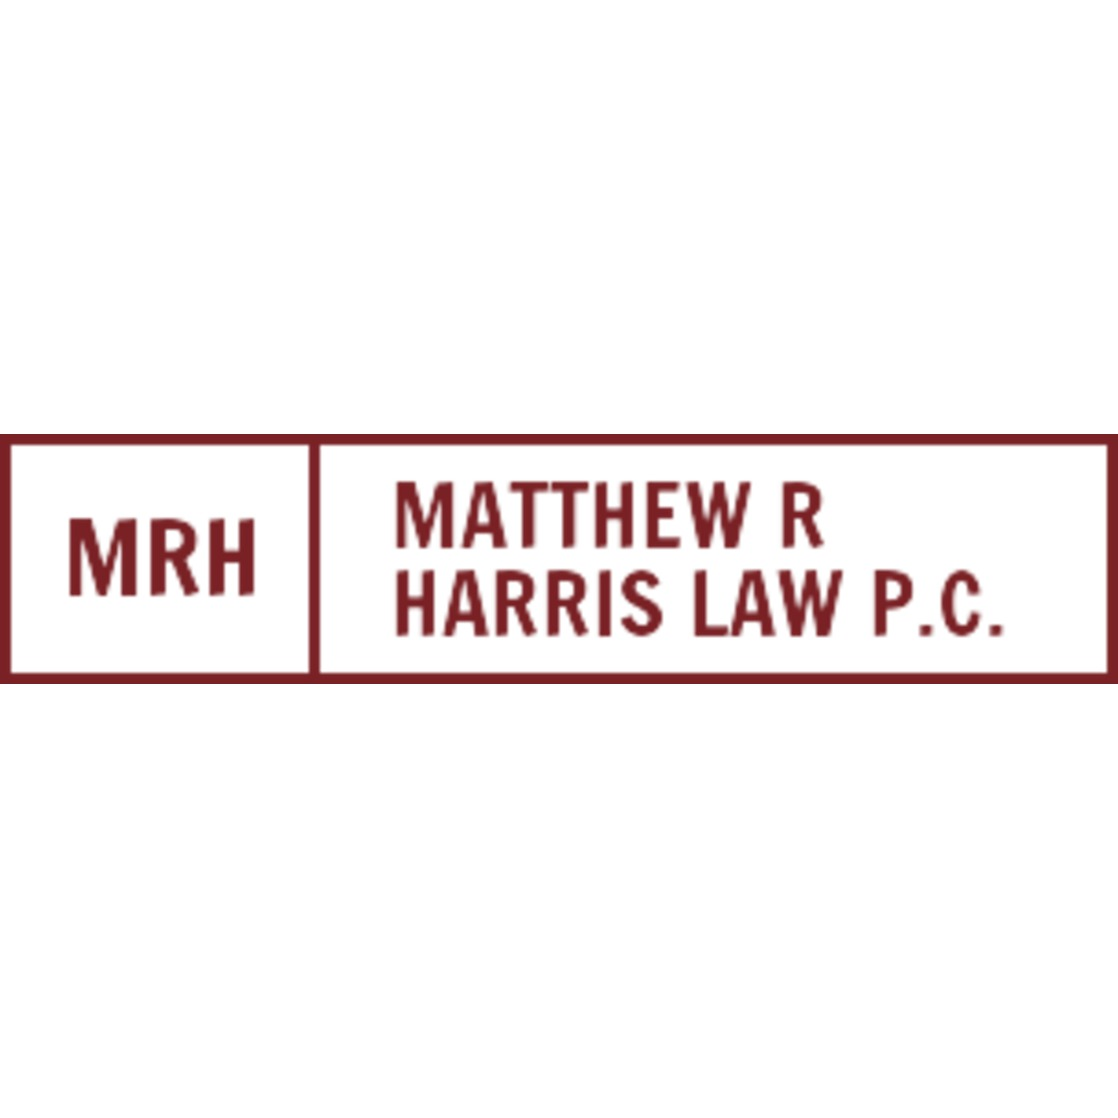 Matthew R Harris Lawyer P.C.